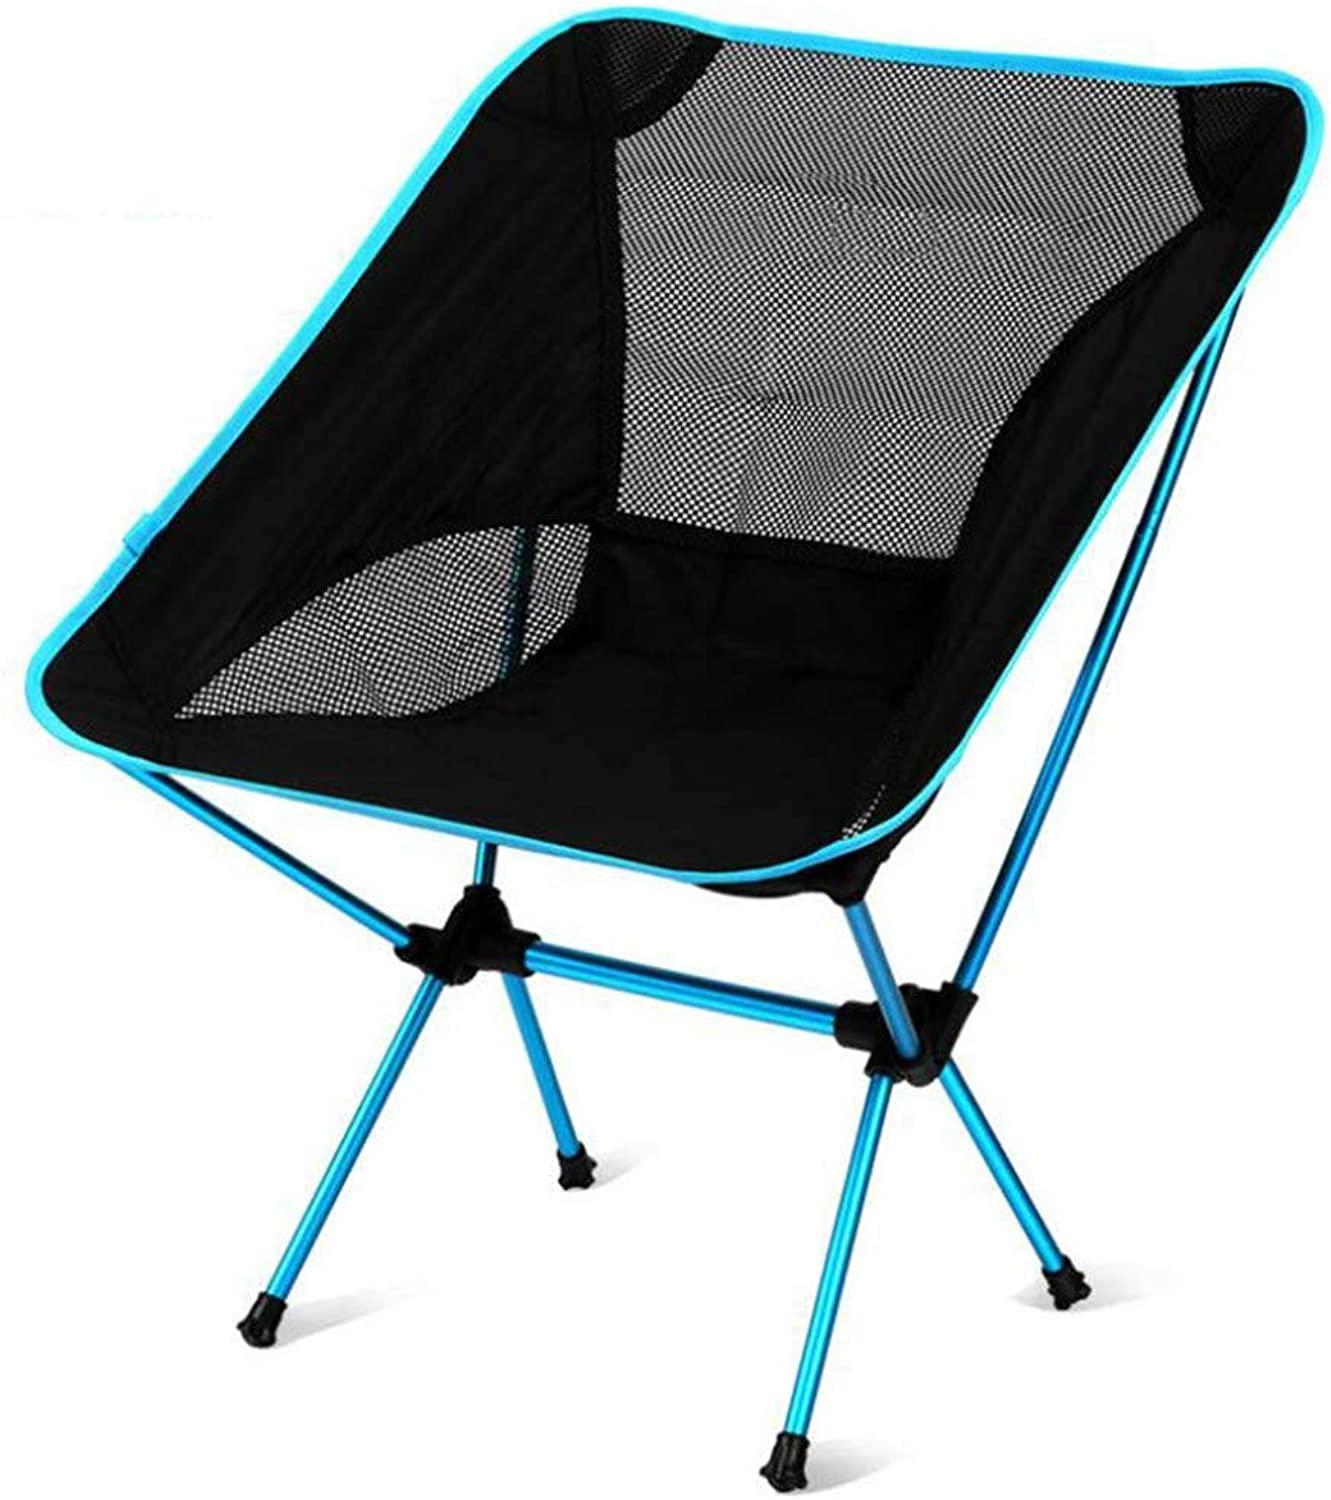 Portable Camping Chair, Aluminum Bracket Camping Recliner Fishing Barbecue Stool Backpack Stool, Quickly-Fold Chair Oxford Cloth with Carry Bag.